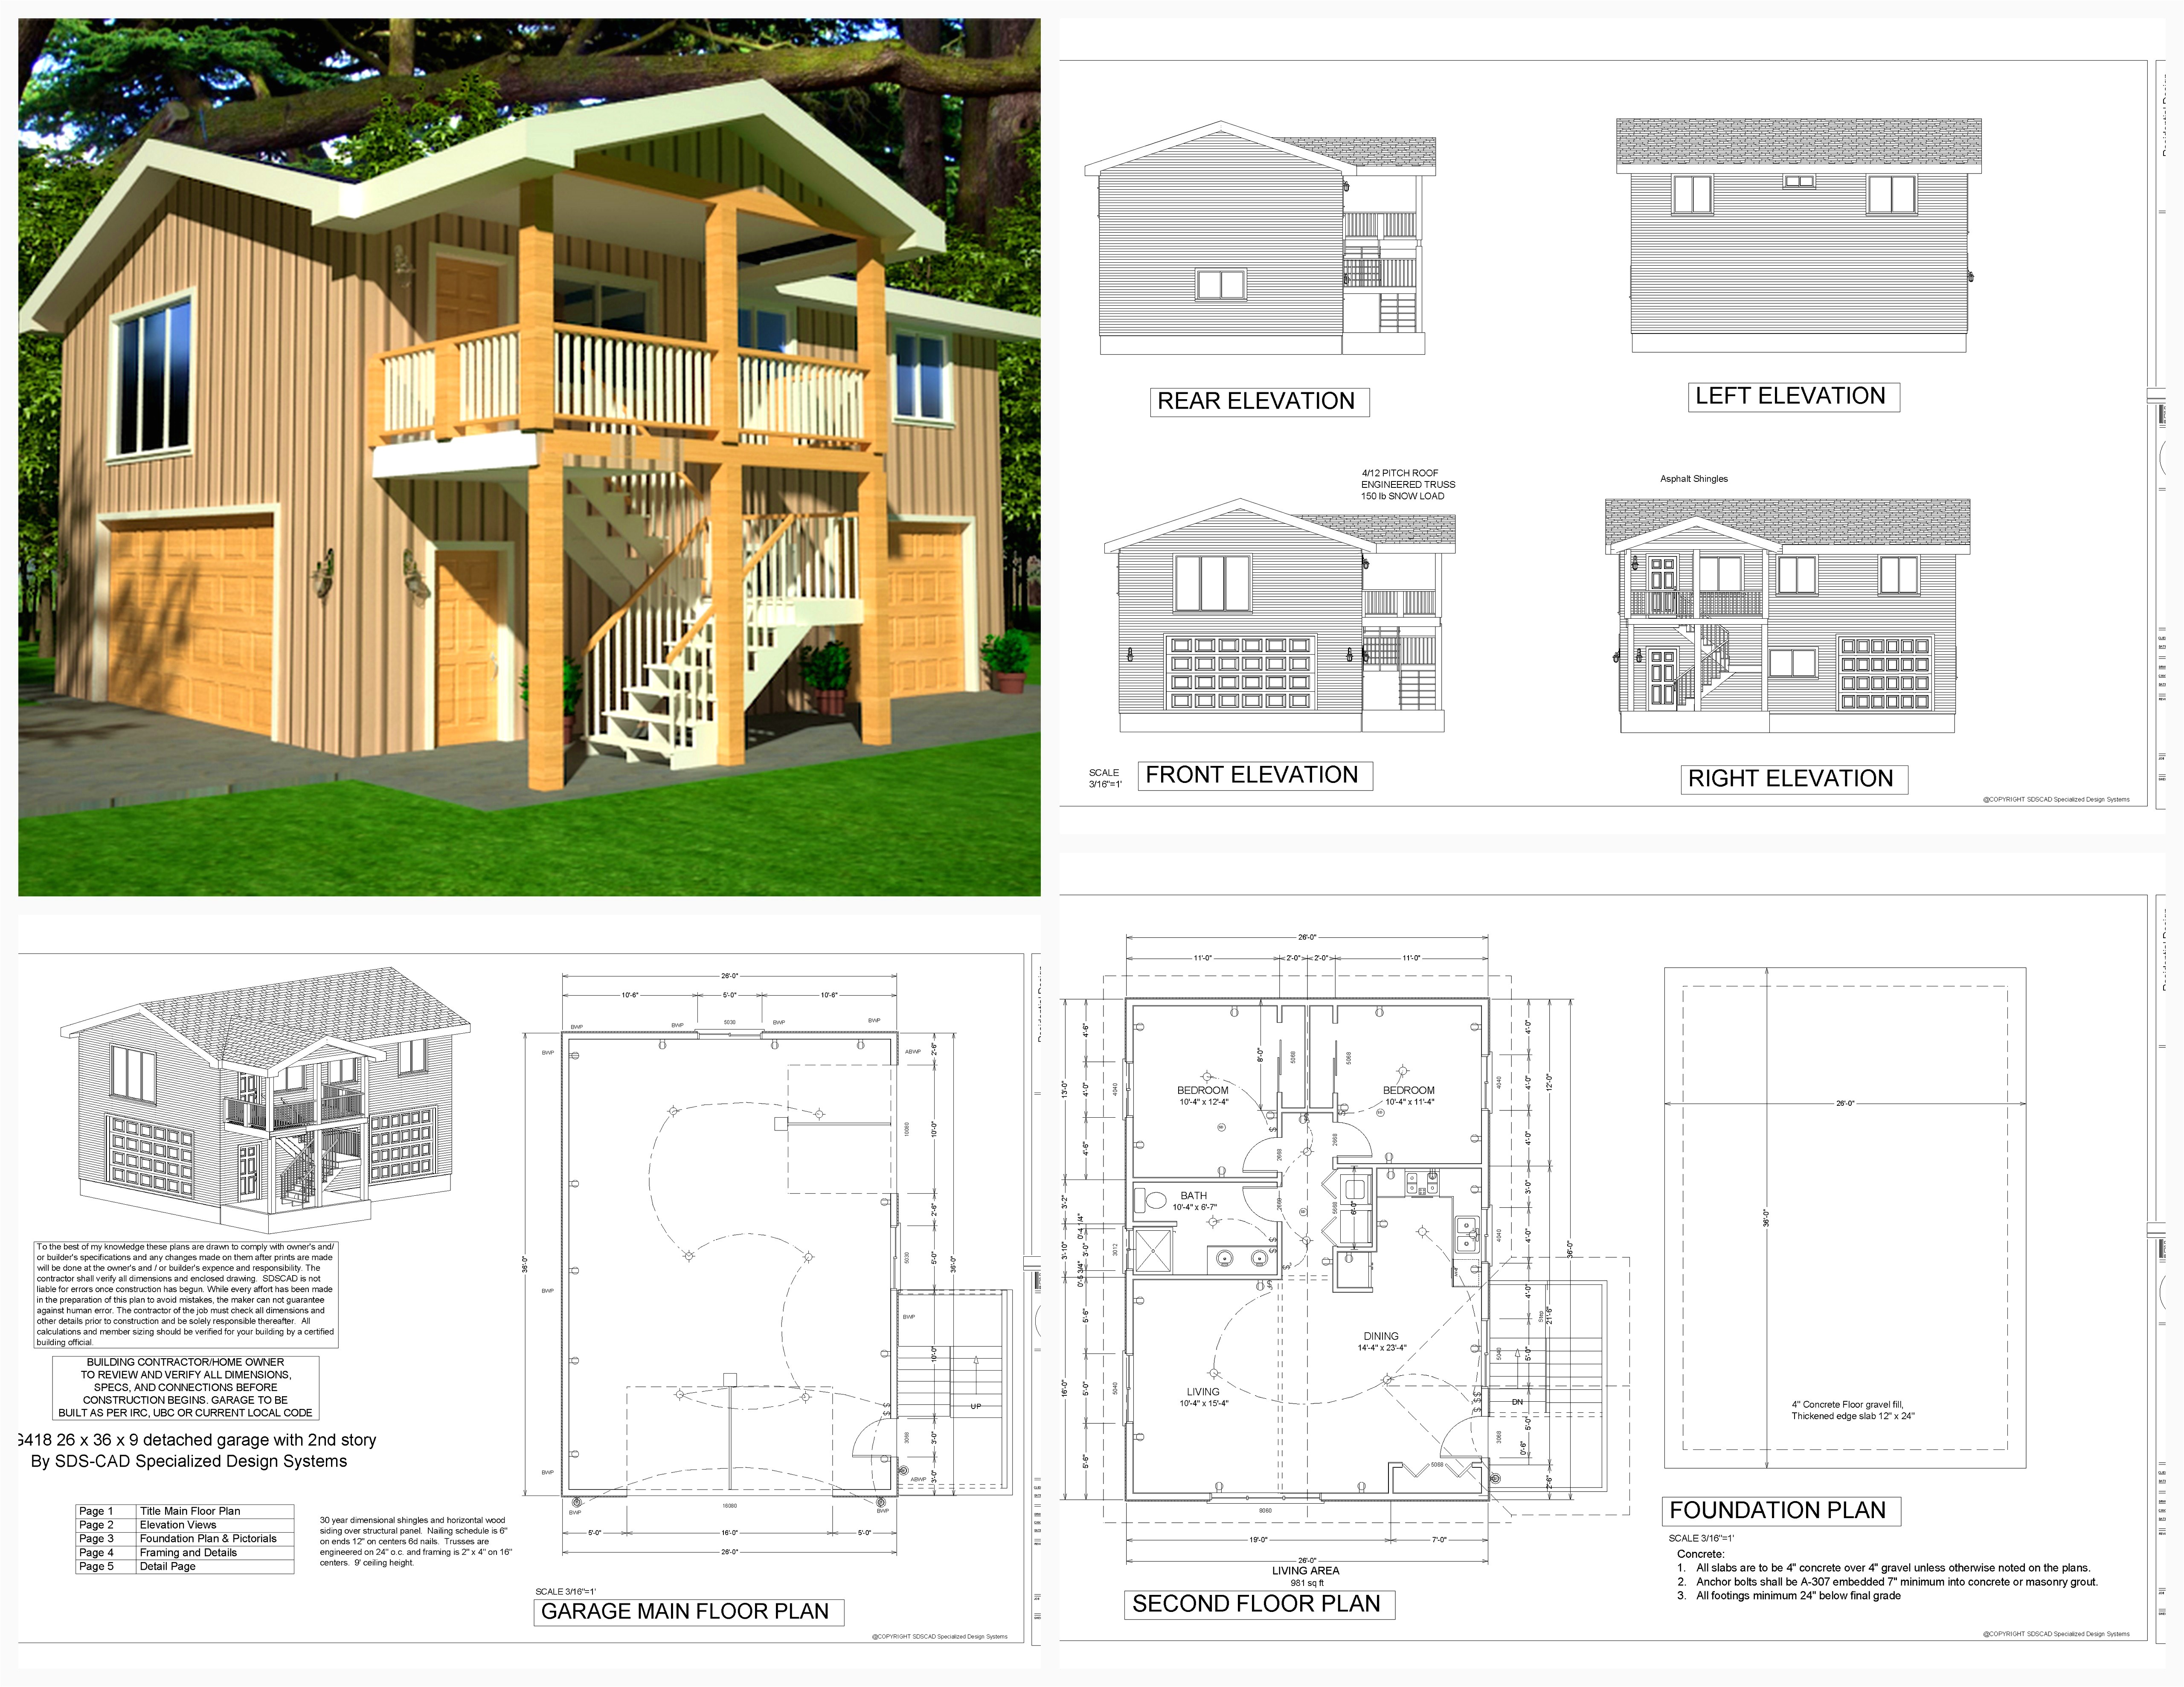 Small House Plans with Rv Storage House Plans with Rv Storage House Plans with Rv Storage